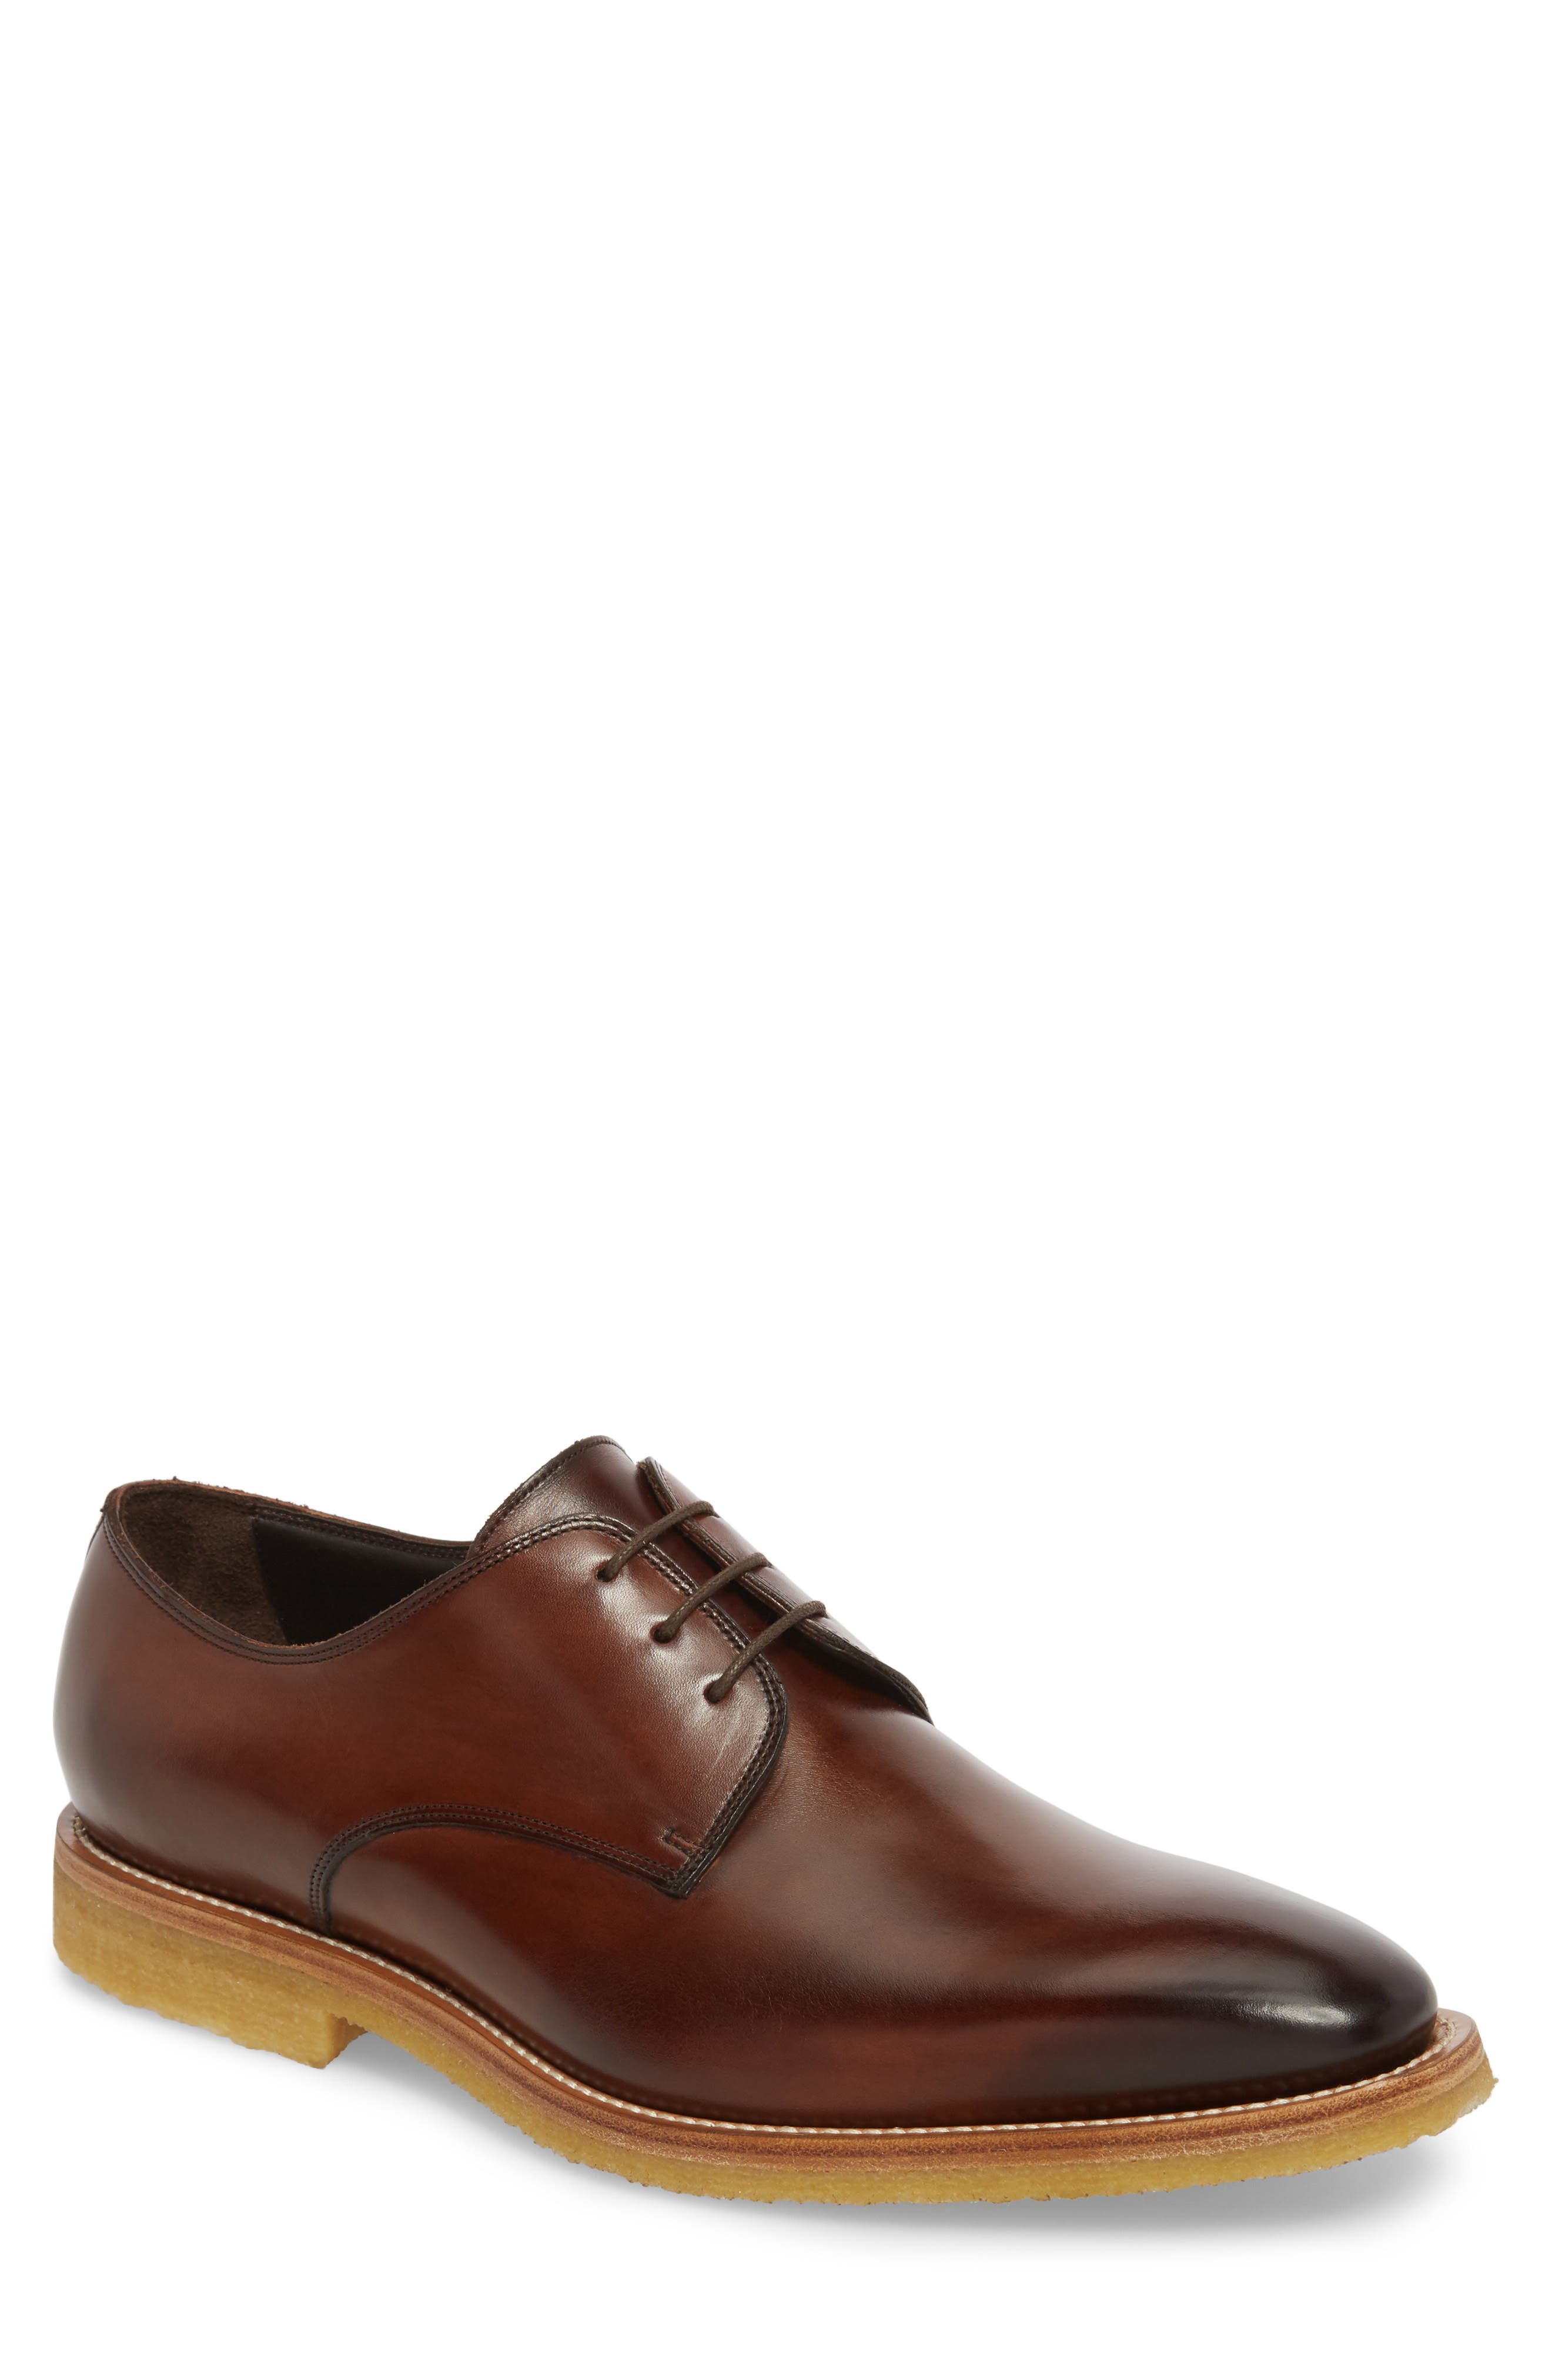 Caruso Plain Toe Derby,                             Main thumbnail 1, color,                             Chestnut Leather